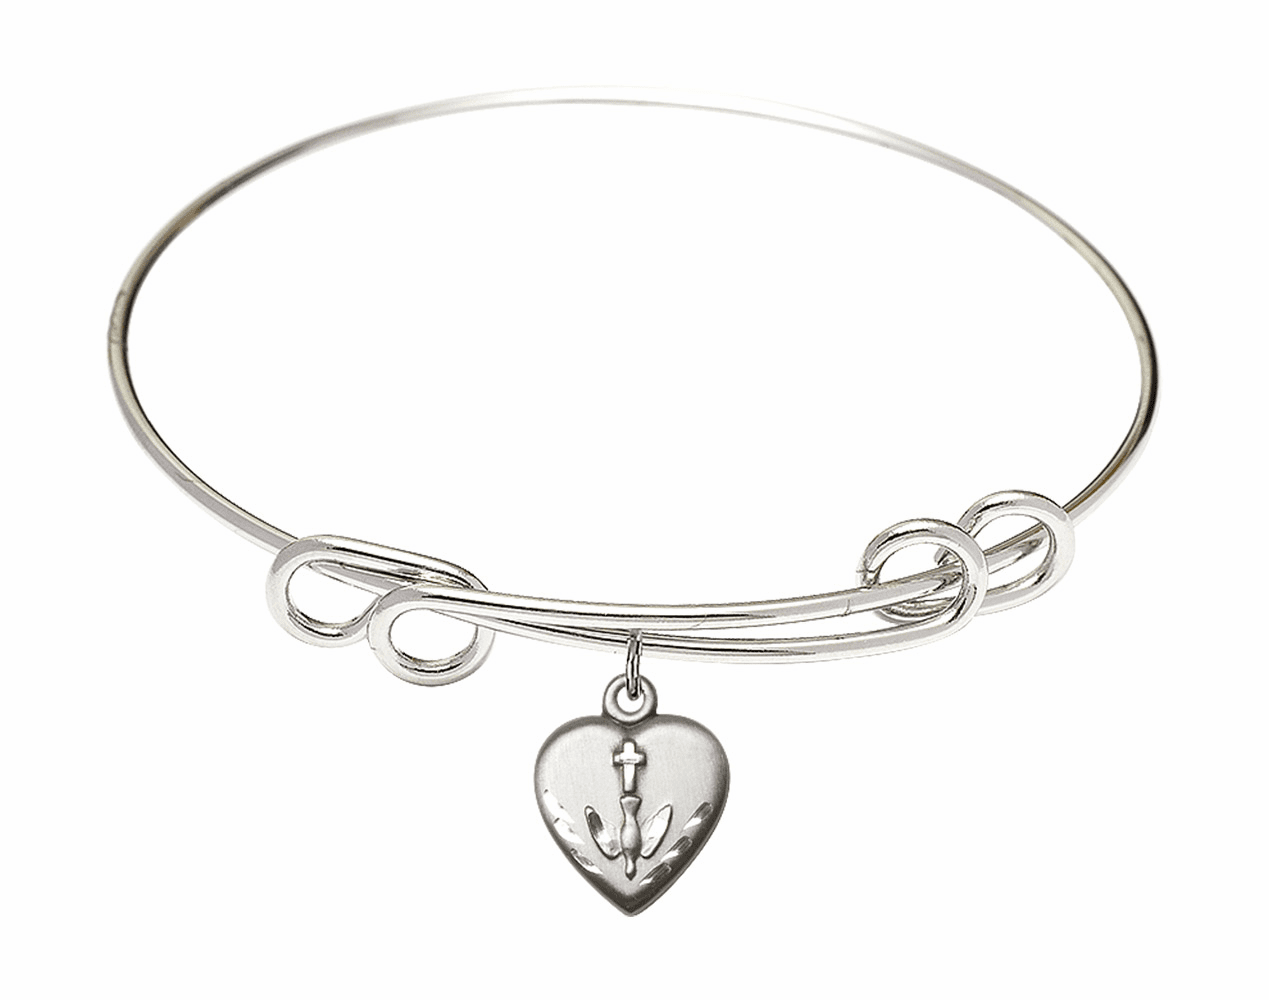 Bliss Holy Spirit Confirmation Bangle Bracelets